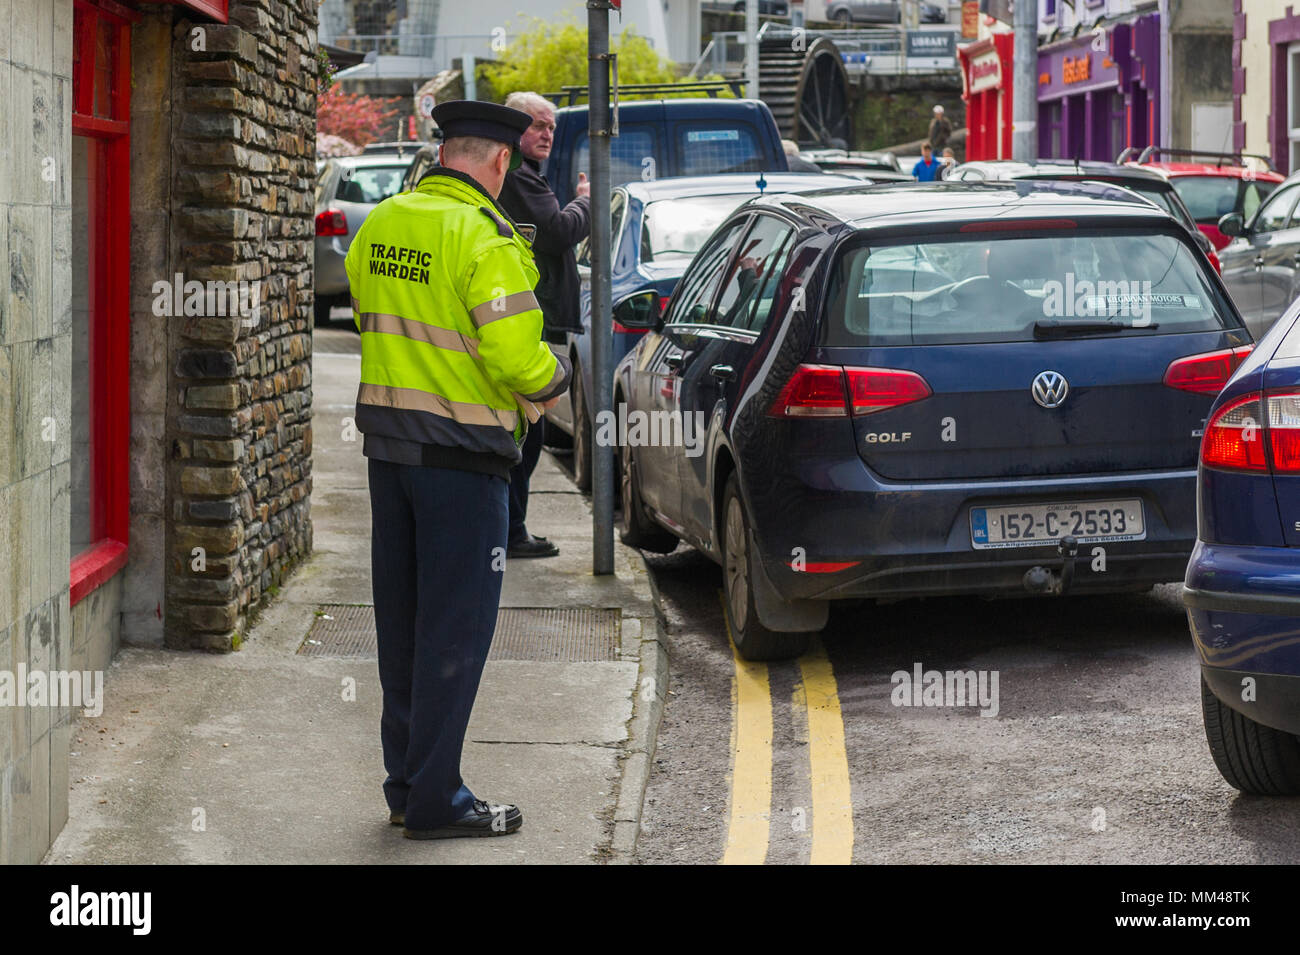 Irish Traffic Warden issues a parking ticket to a car which is parked on double yellow lines and the pavement in Bantry, County Cork, Ireland. - Stock Image